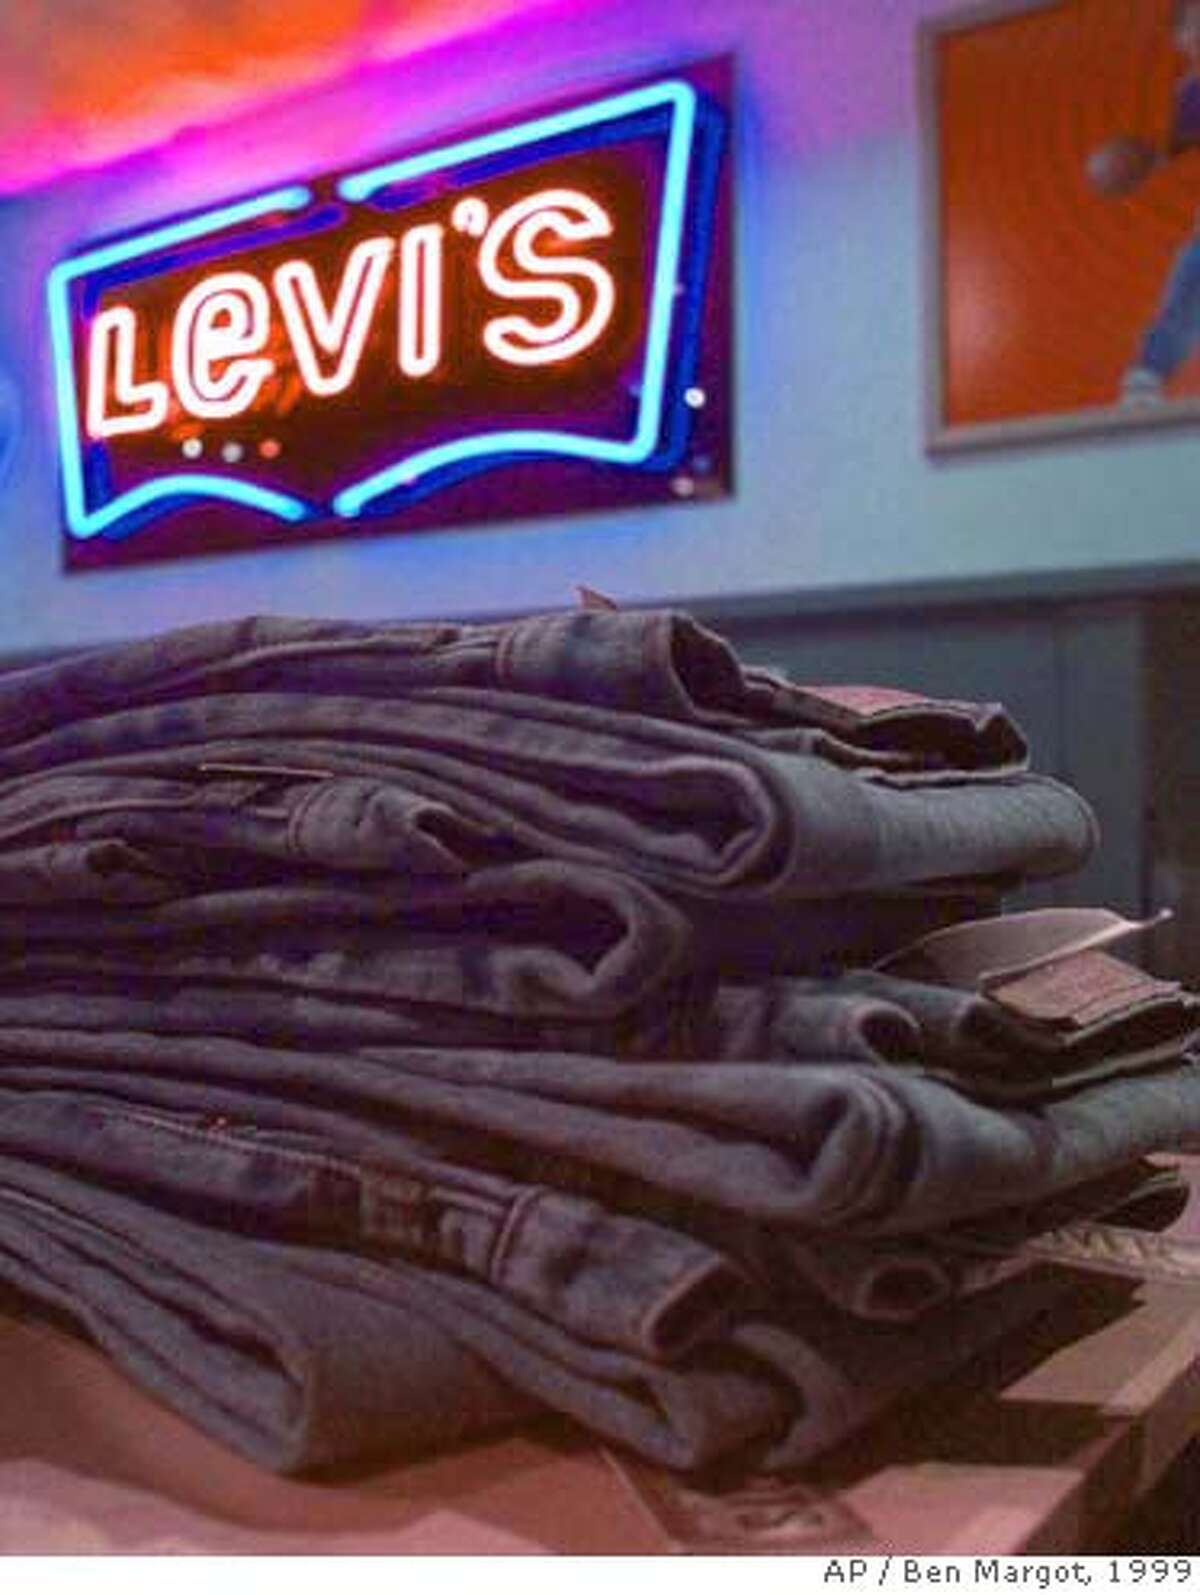 Levi's blue jeans await sale Monday, Feb. 22, 1999, in San Francisco. Levi Strauss & Co. has announced it will close 11 of its 22 North American plants and lay off about 5,900 employees as the jeans maker struggles with slumping sales. (AP Photo/Ben Margot). ALSO RAN 06/21/2000, 12/28/2000, 9/20/2001 CAT